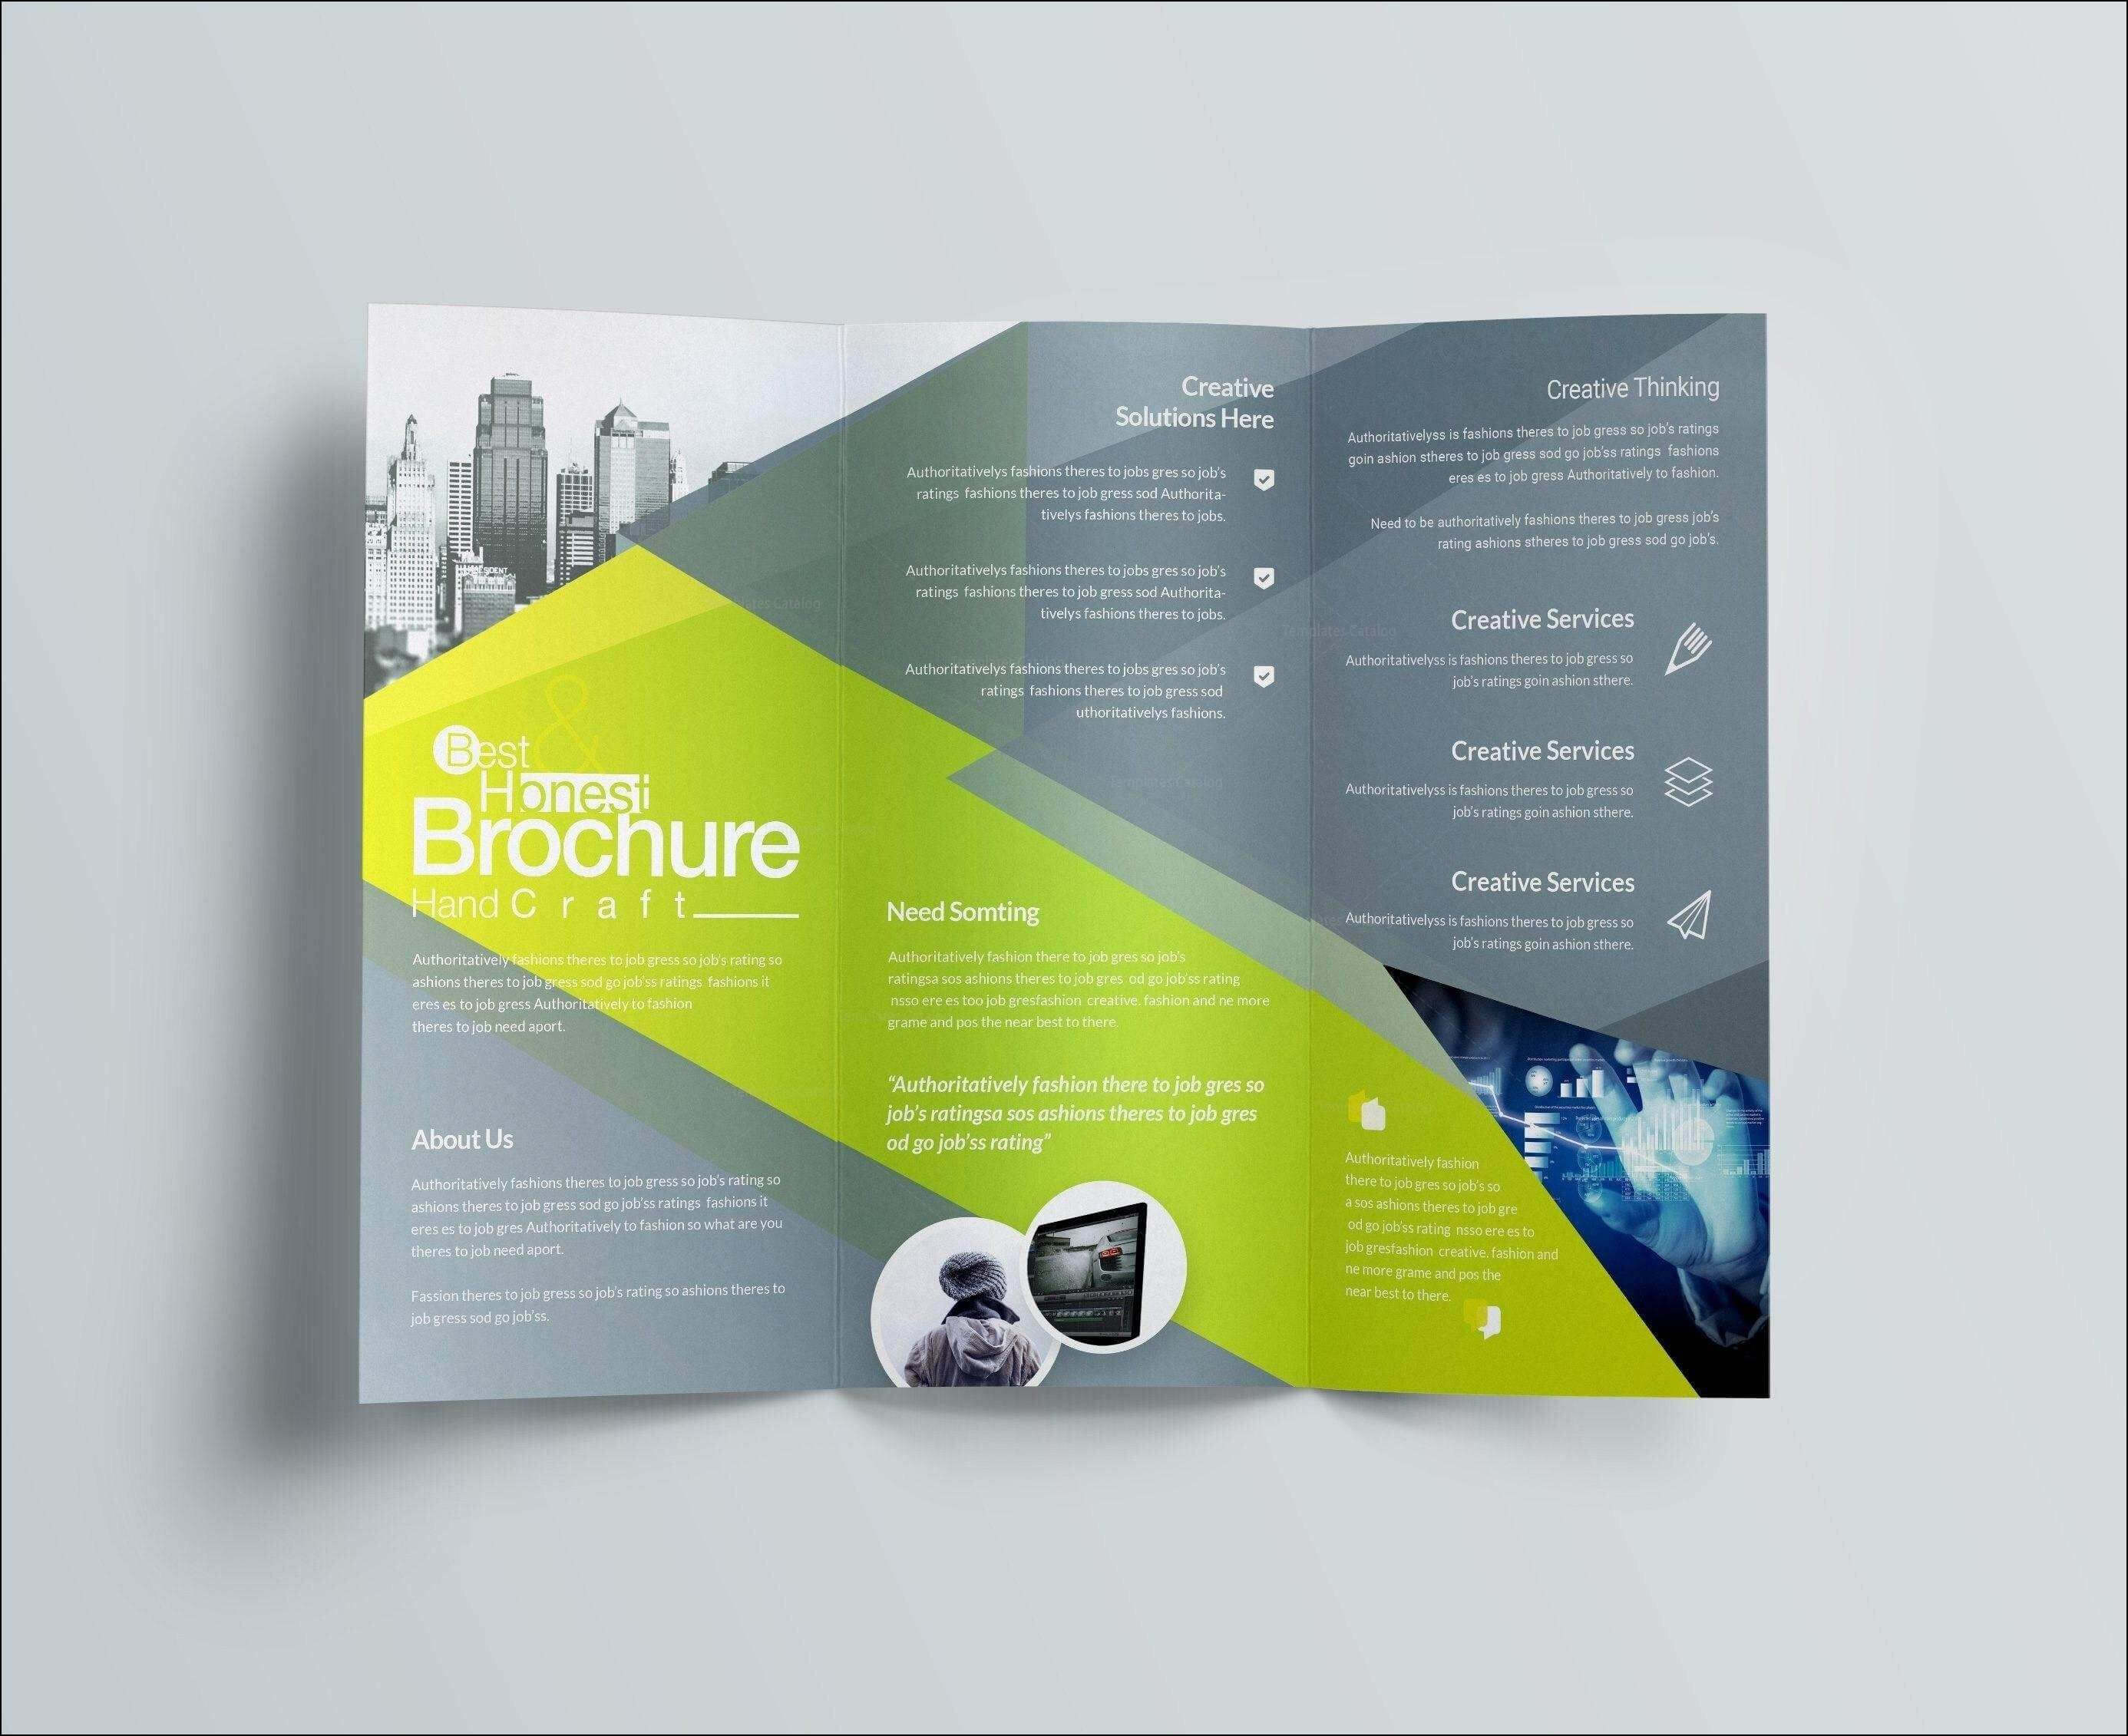 002 Ms Publisher Brochure Template Singular Ideas Templates Inside Free Template For Brochure Microsoft Office